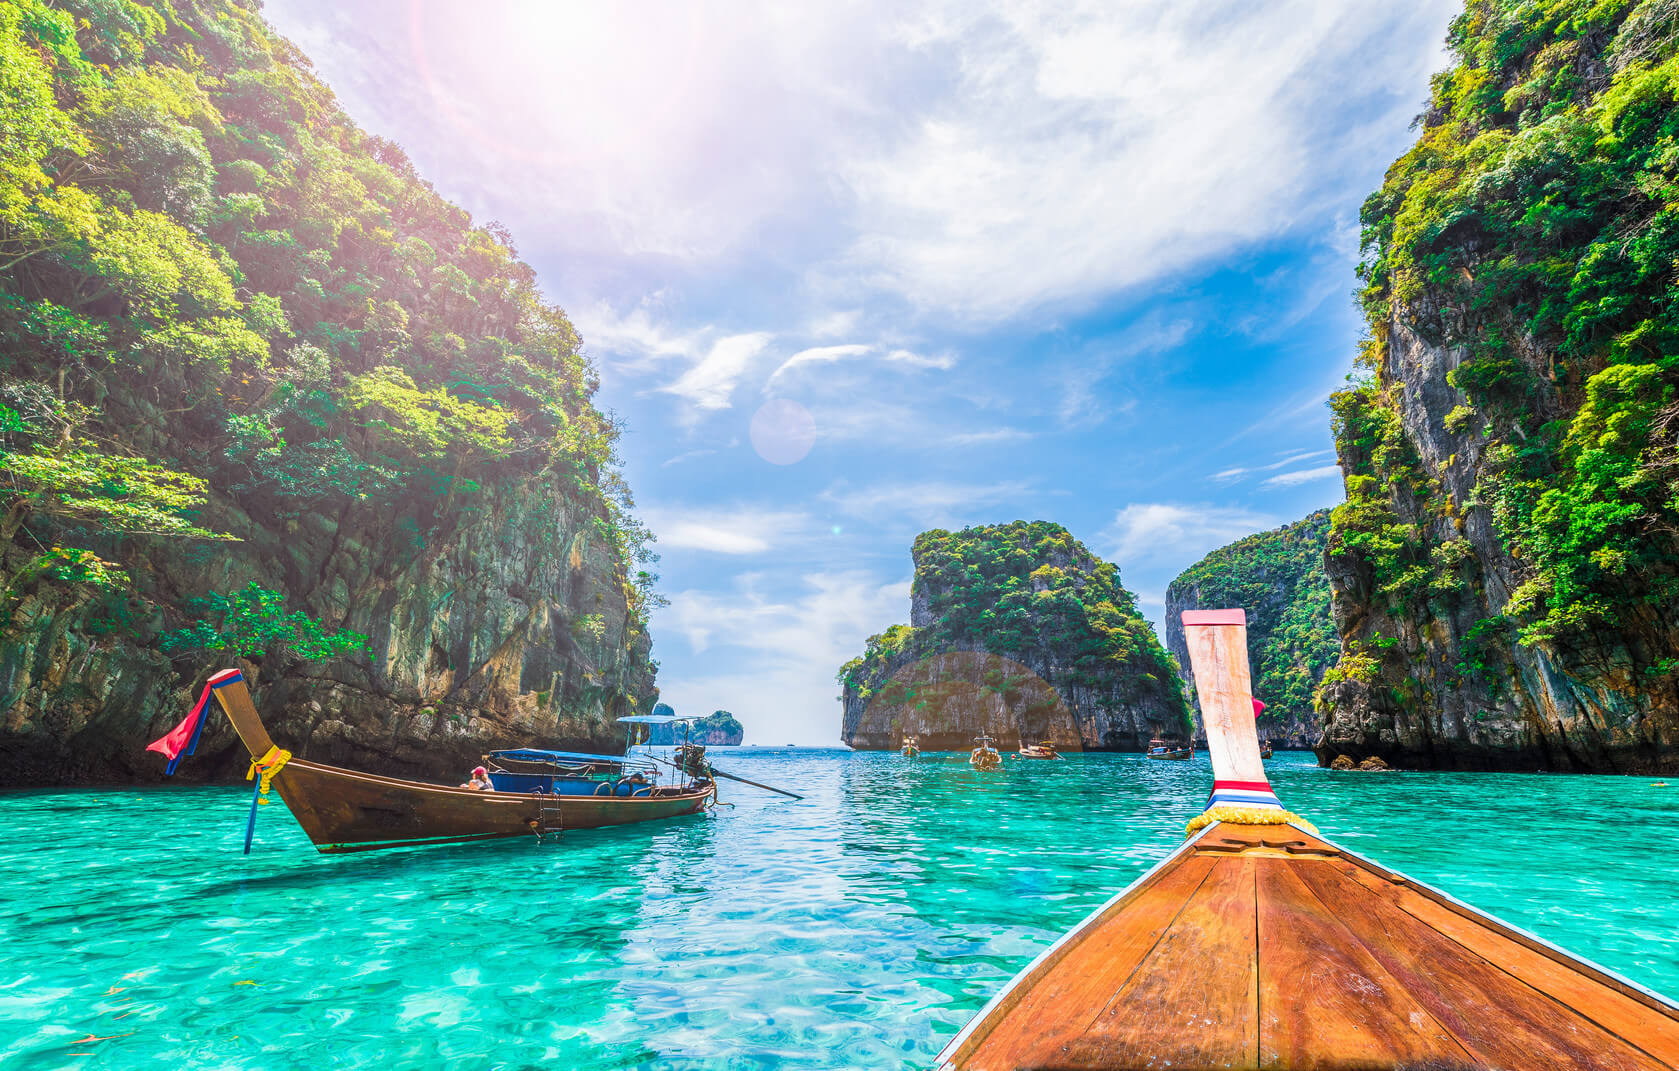 thailand,travel,phi,exotic,landscape,tour,place,krabi,island,scenery,boat,beach,nature,landmark,holiday,tourism,sea,longtail,asia,scenic,indian,seascape,summer,thai,andaman,asian,background,bay,water,blue,don,green,ko,koh,lagoon,losama,maya,mountain,nautical,ocean,phi phi,phi-phi,relax,sand,shore,swim,traditional,tropical,turquoise,vacation